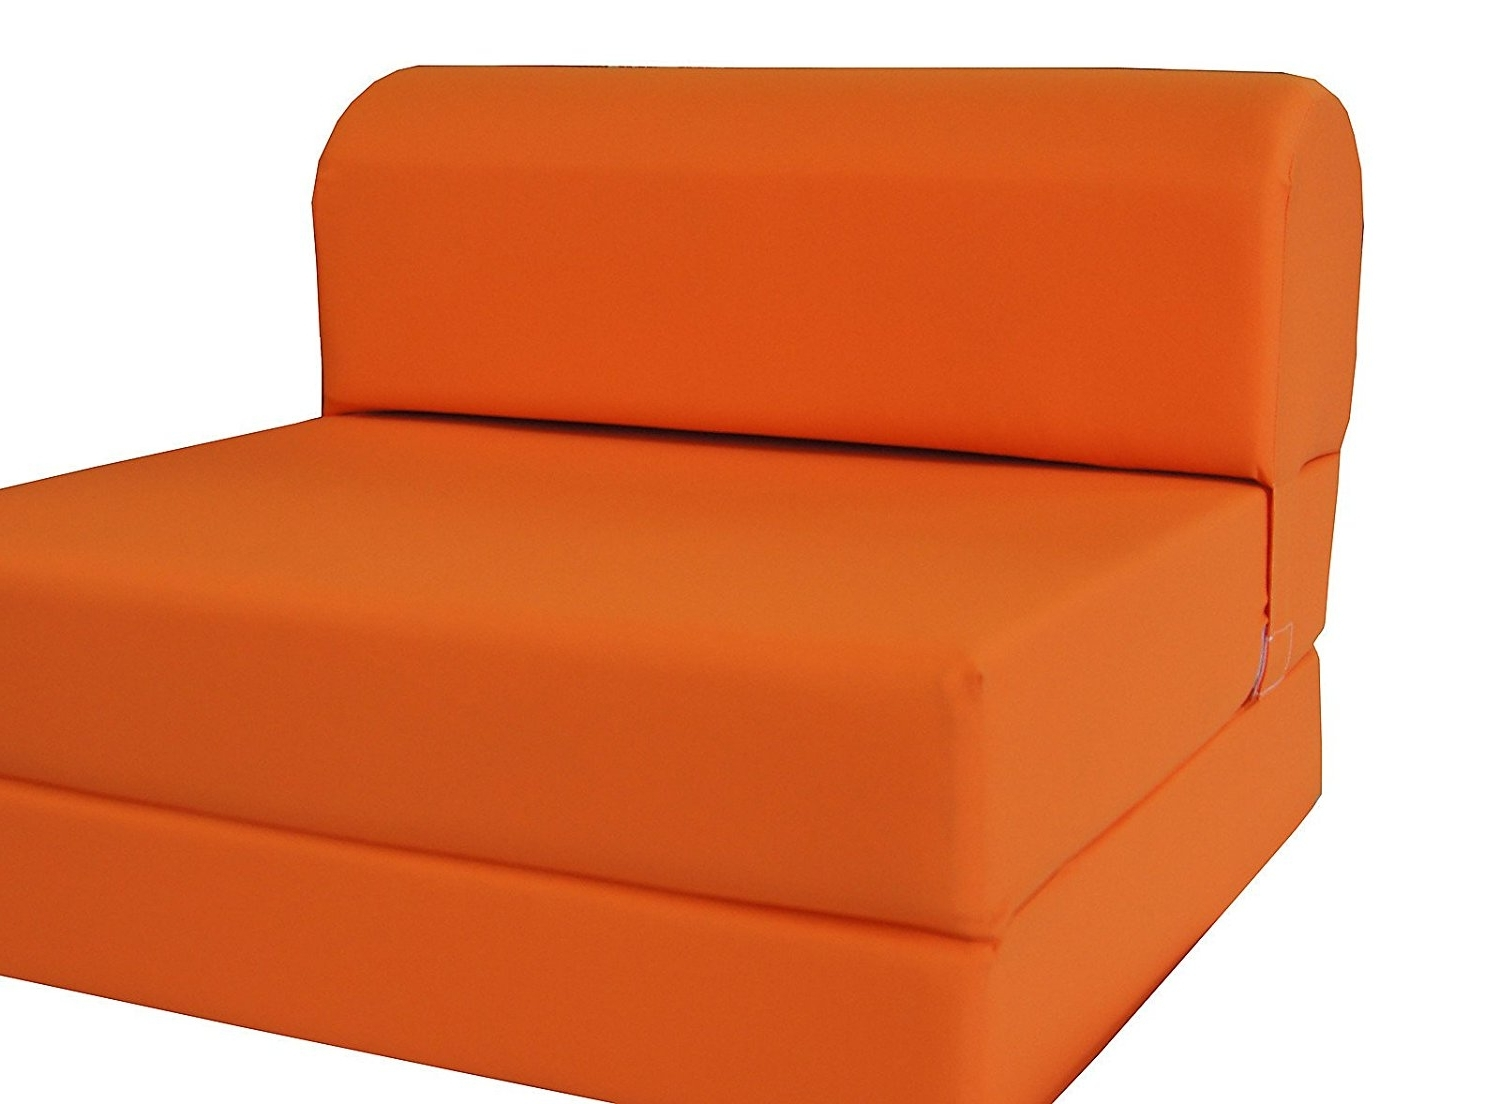 "Fold Up Sofa Chairs With Regard To Most Recently Released Amazon: Orange Sleeper Chair Folding Foam Bed Sized 6"" Thick X (View 10 of 15)"